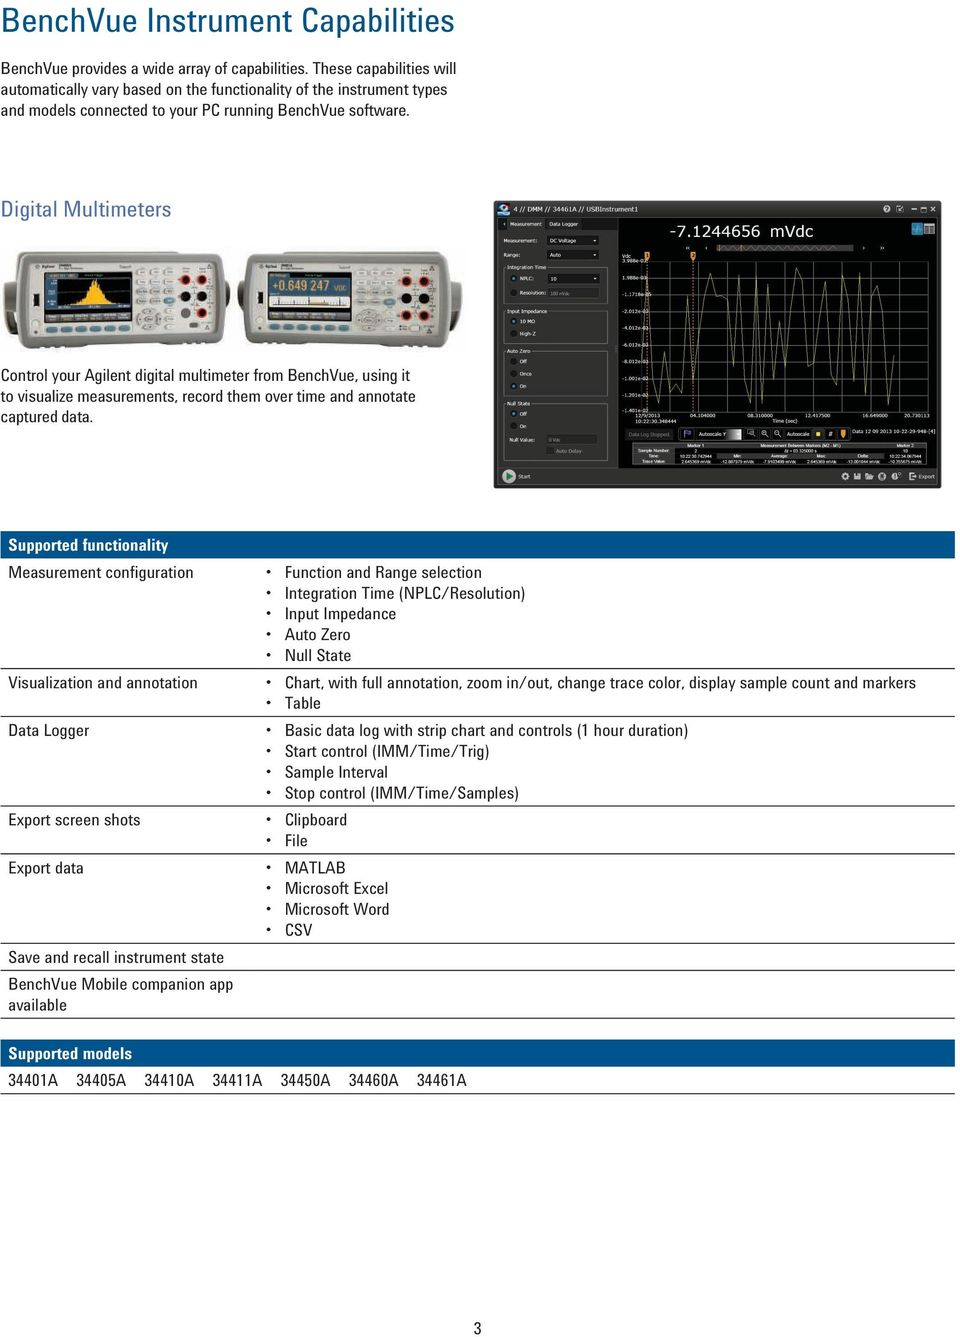 Digital Multimeters Control your Agilent digital multimeter from BenchVue, using it to visualize measurements, record them over time and annotate captured data.